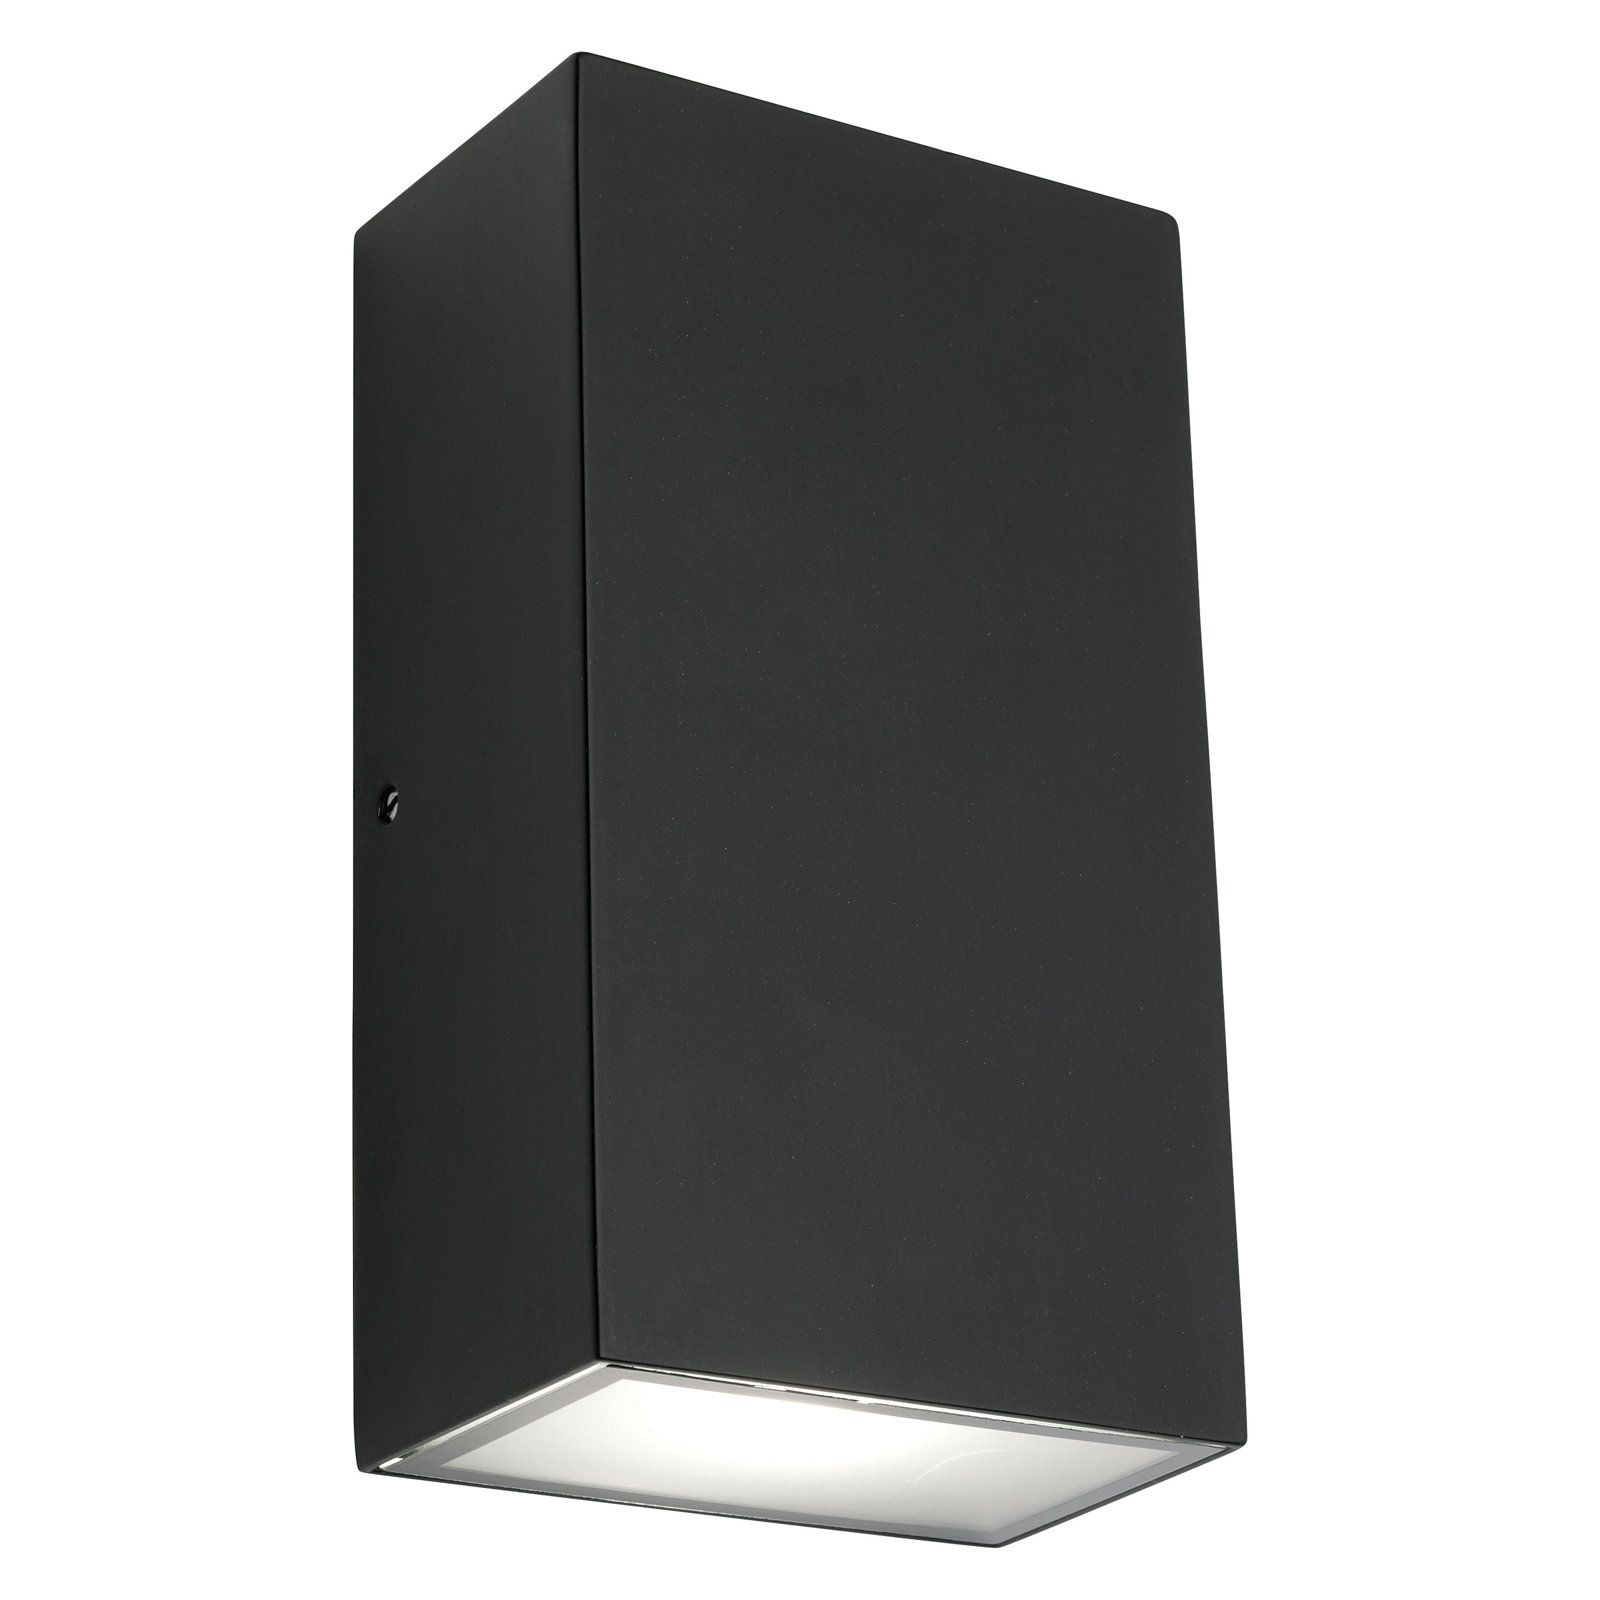 Mercator Brenton LED Square Black UpDown Exterior Wall Light